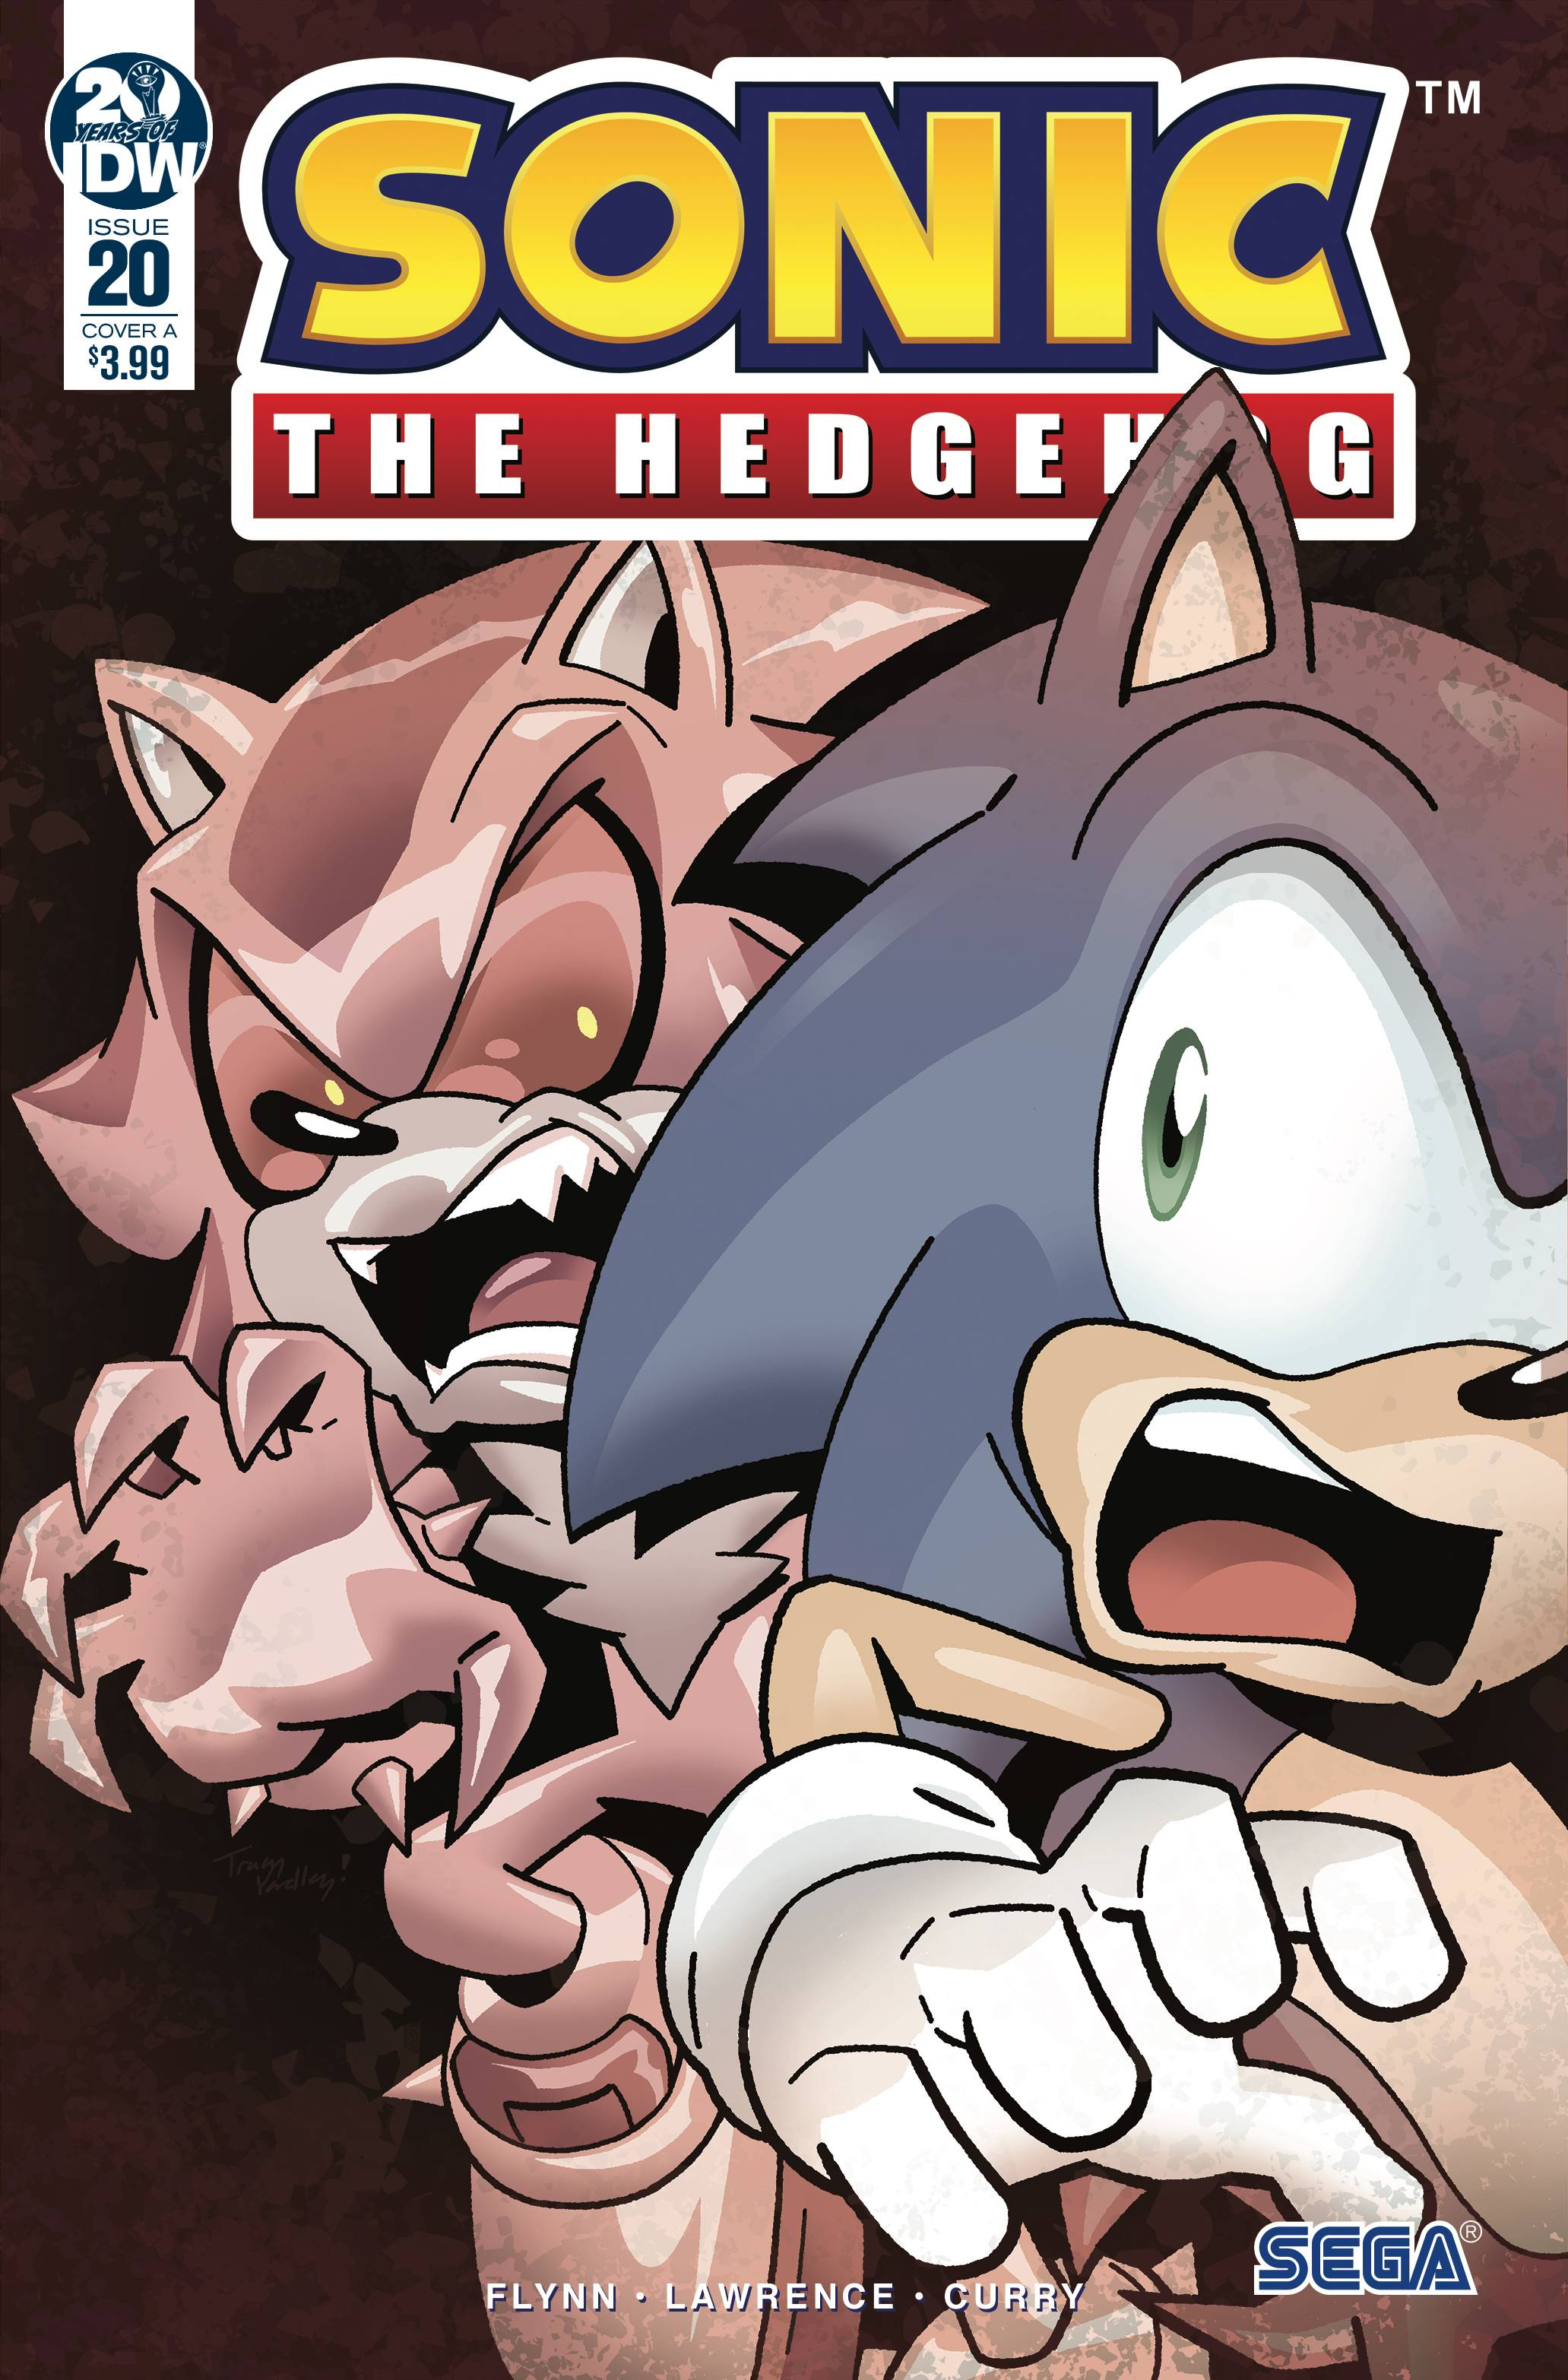 SONIC THE HEDGEHOG #20 CVR A YARDLEY